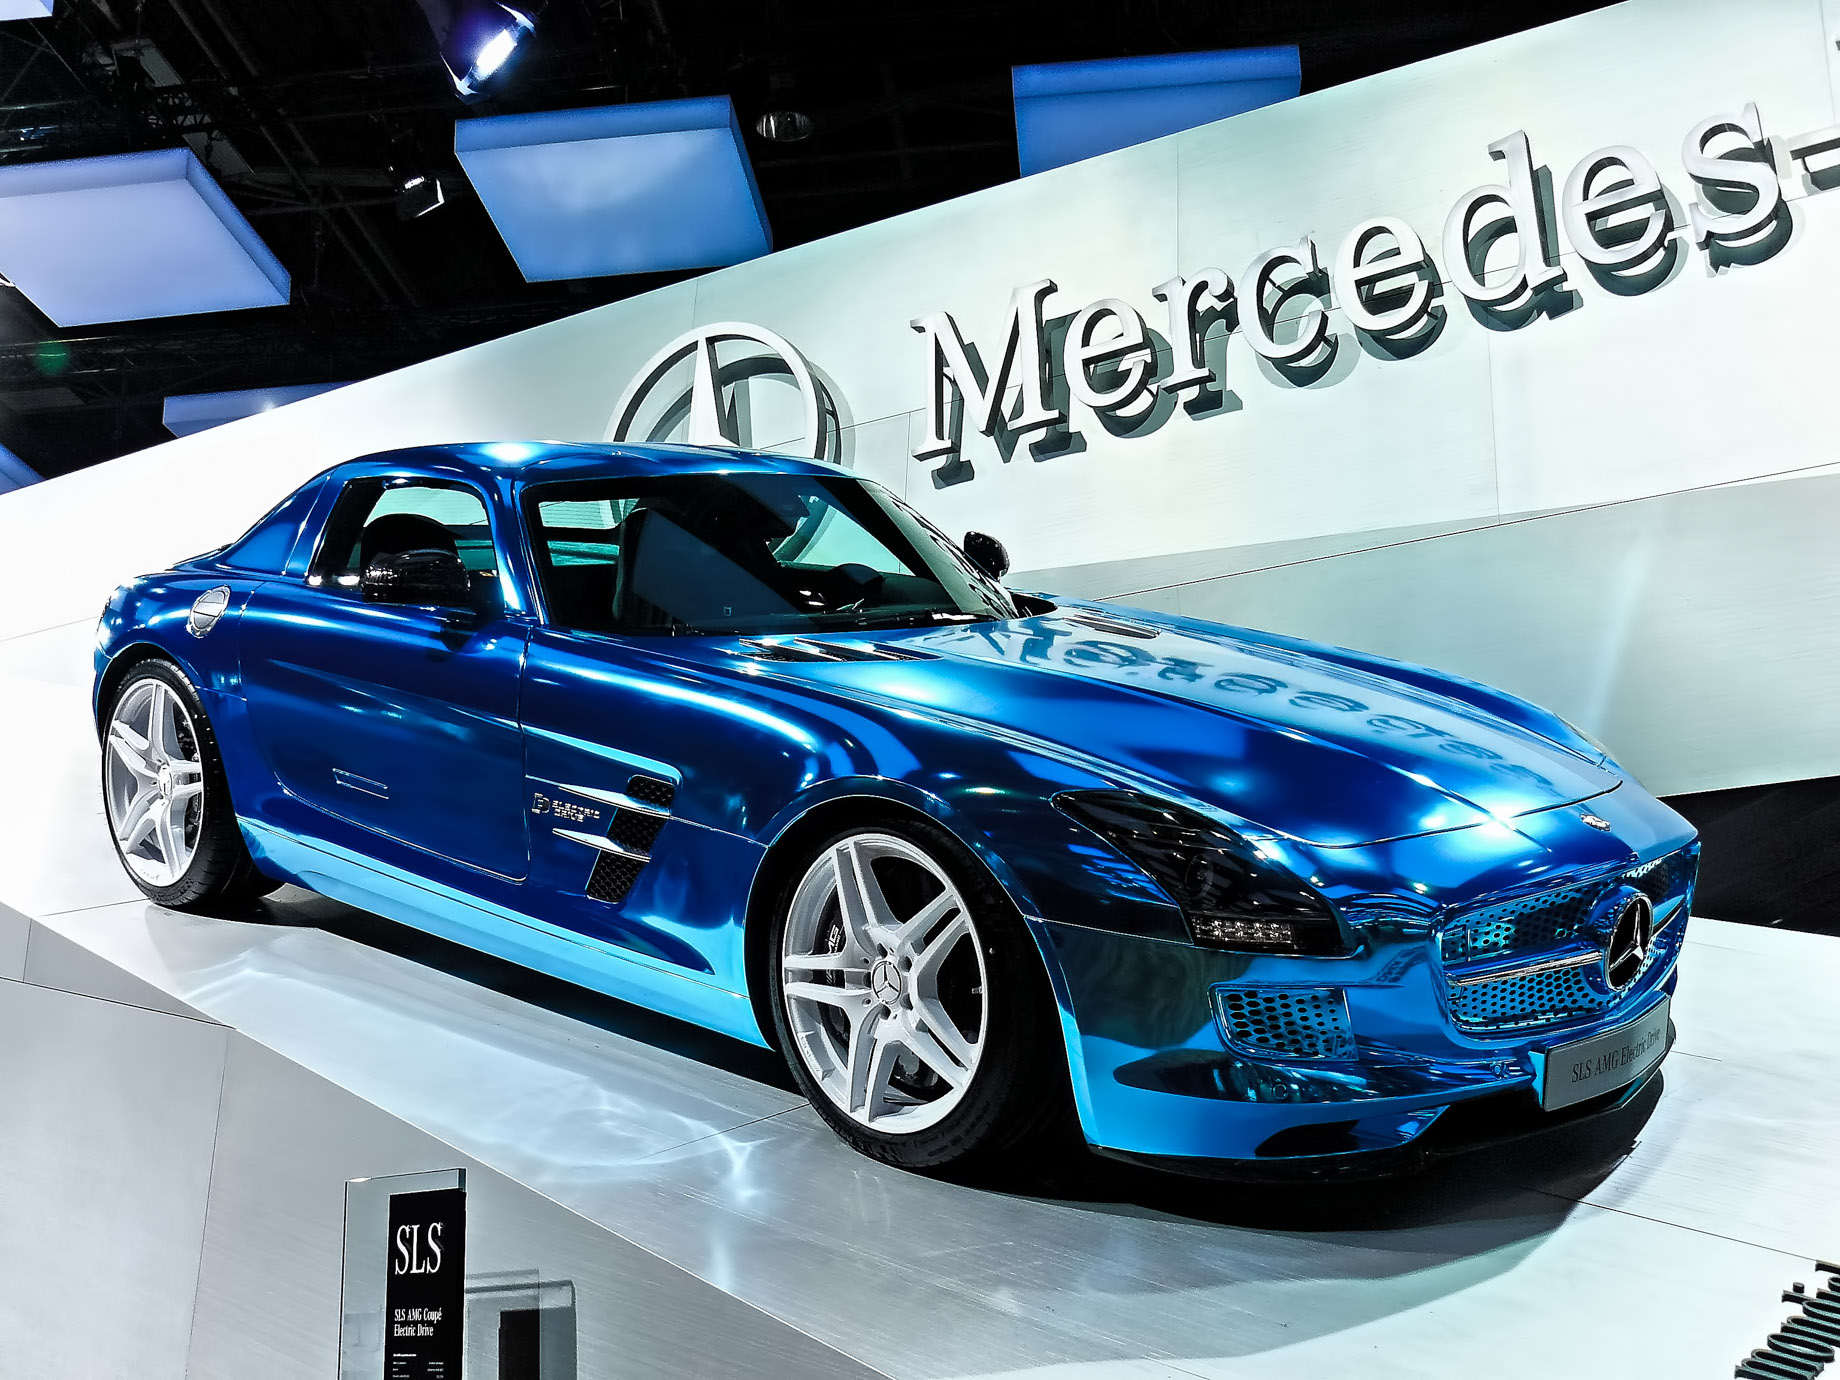 Mercedes-Benz SLS at the 2013 Geneva Motor Show